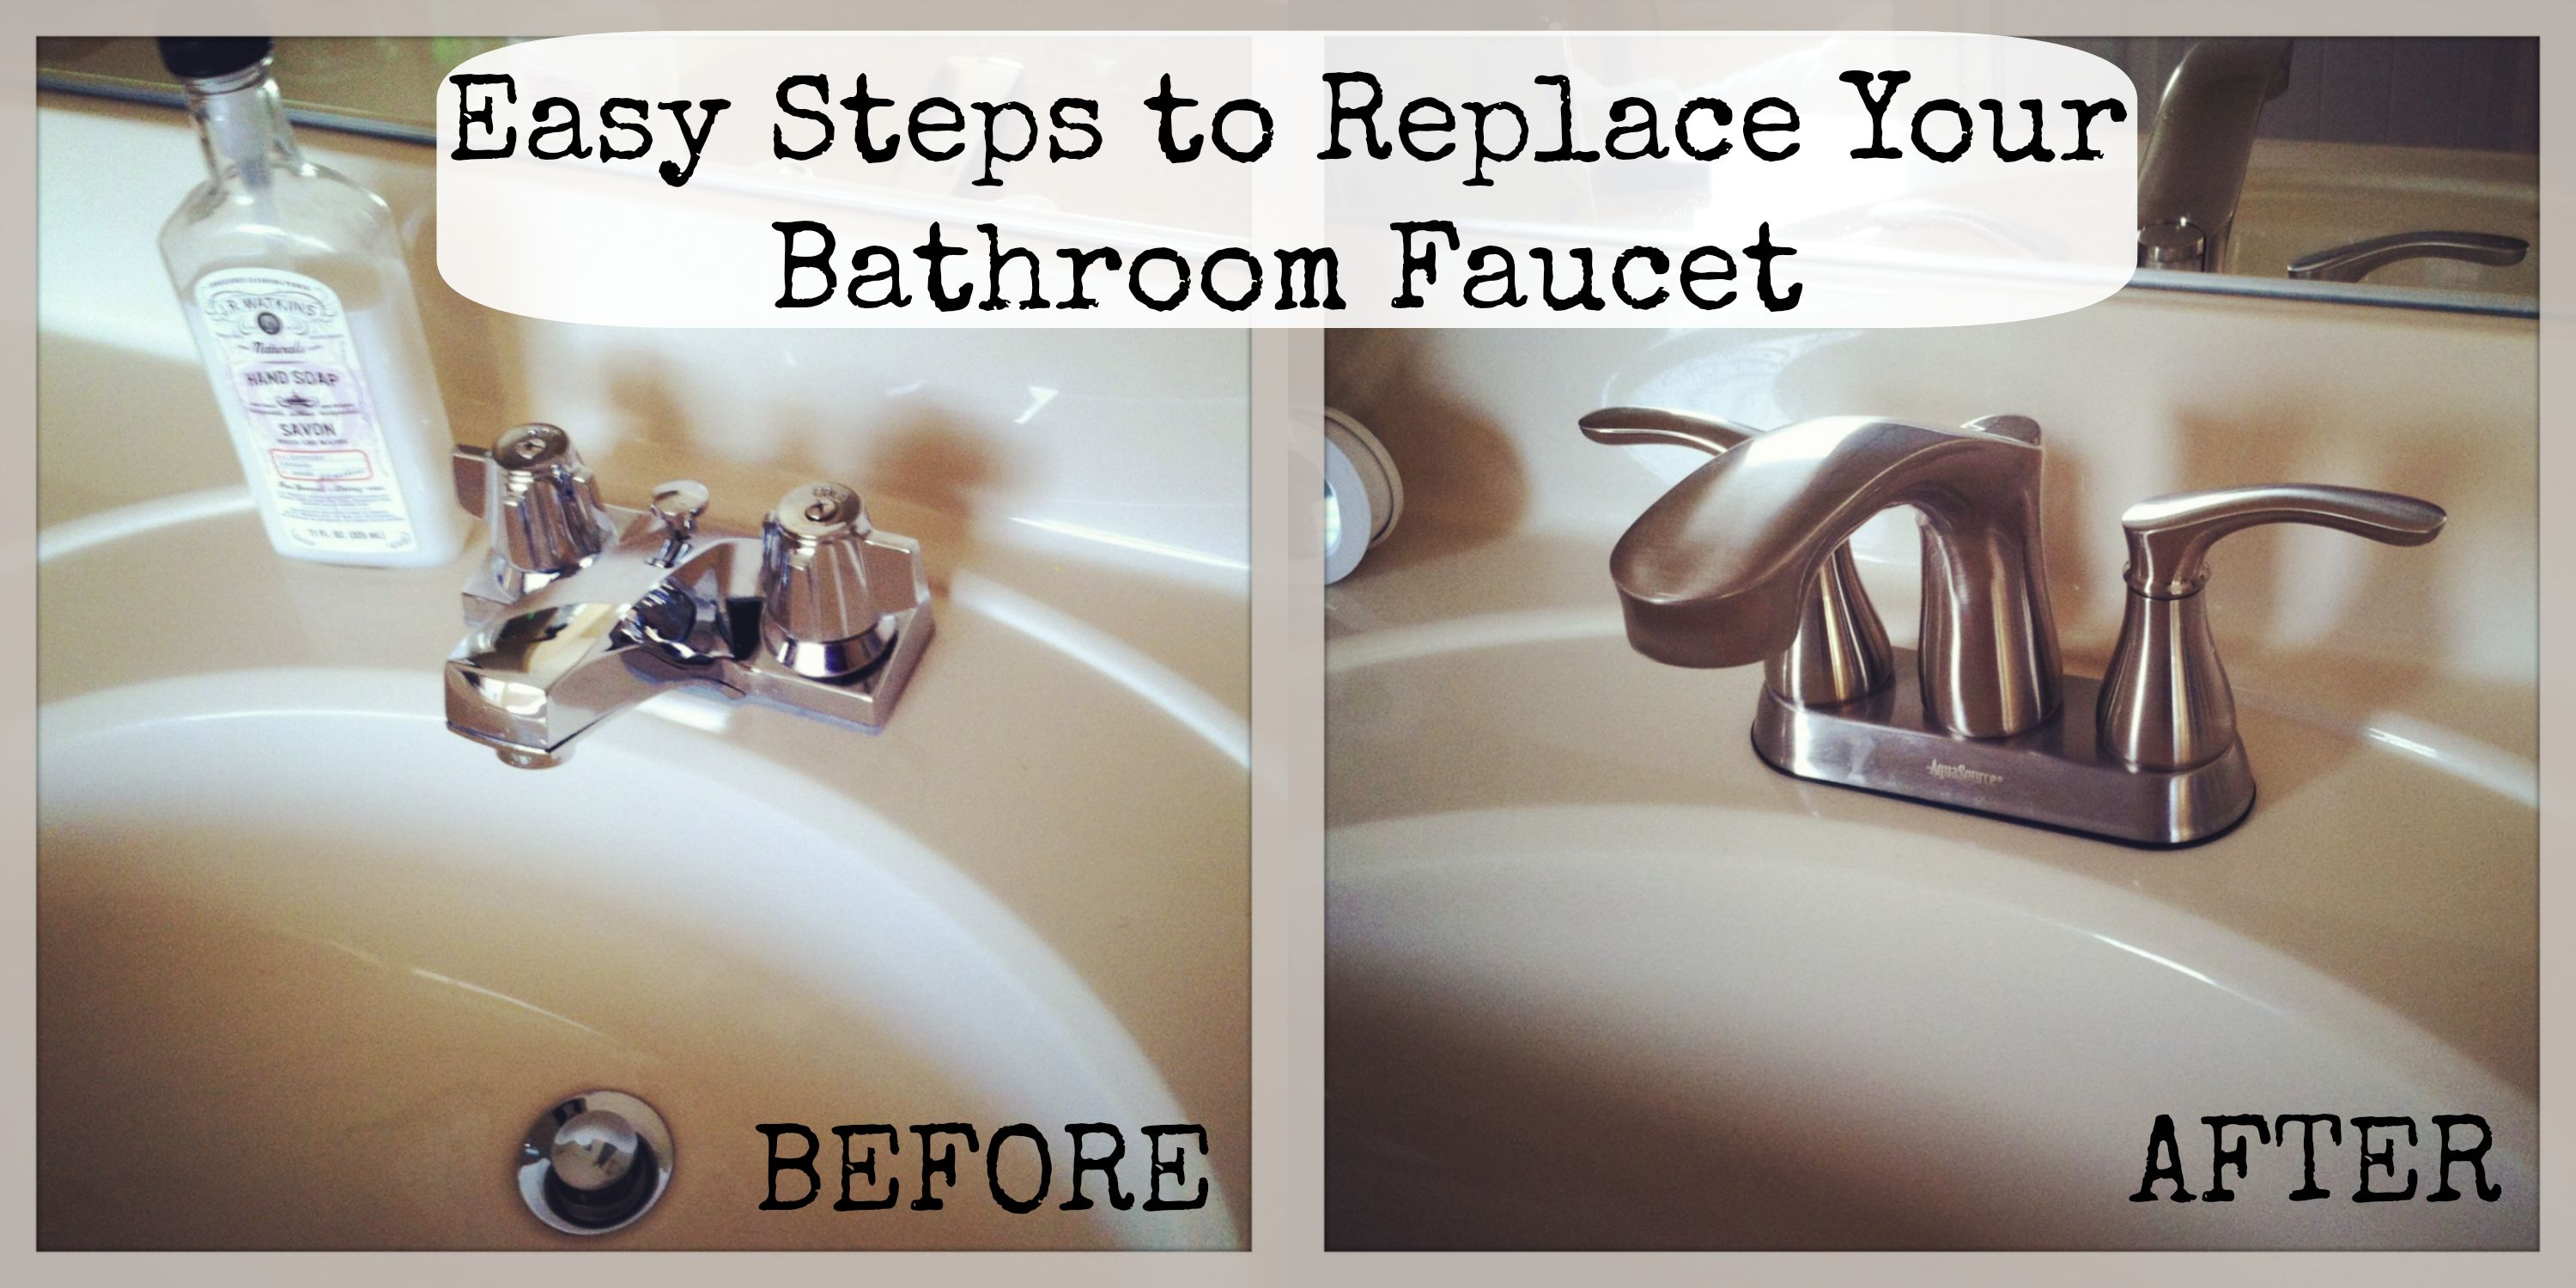 Easy Diy How To Change A Bathroom Faucet Replace Bathroom Faucet Bathroom Faucets Faucets Diy